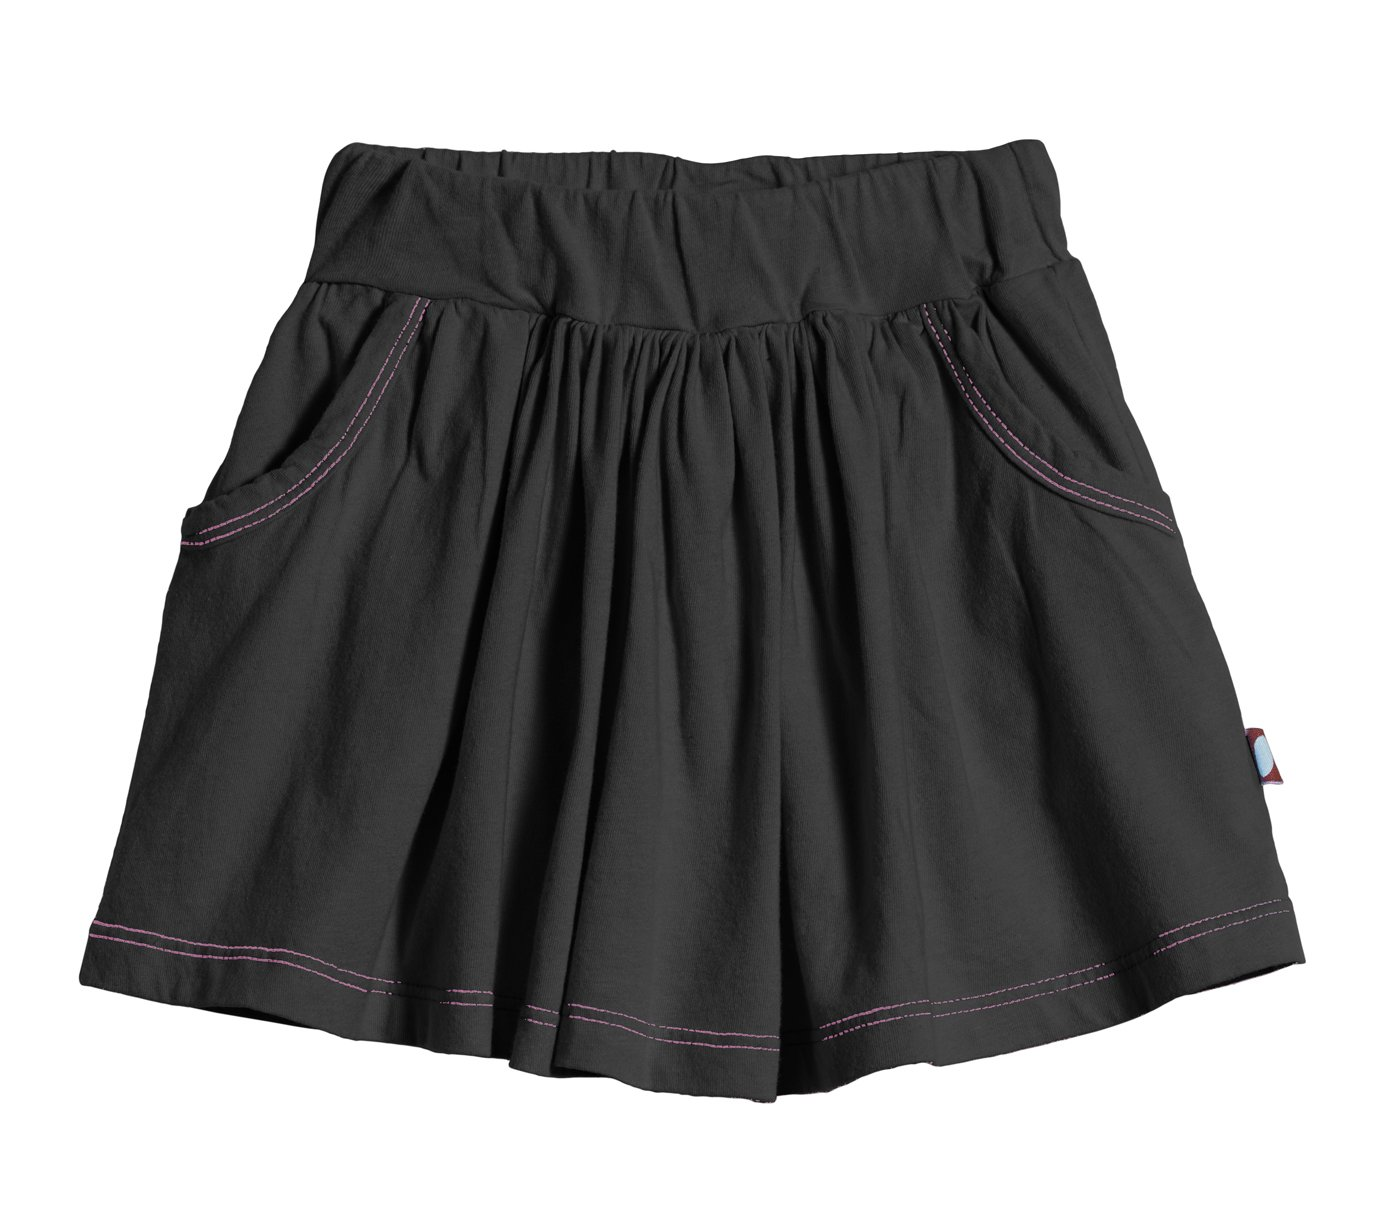 City Threads Girls' Skort Skirt Shorts For Play School or Fun, Extra Soft 100% Breathable Cotton Perfect for Sensitive Skins and SPD Sensory Sensitive, Black4